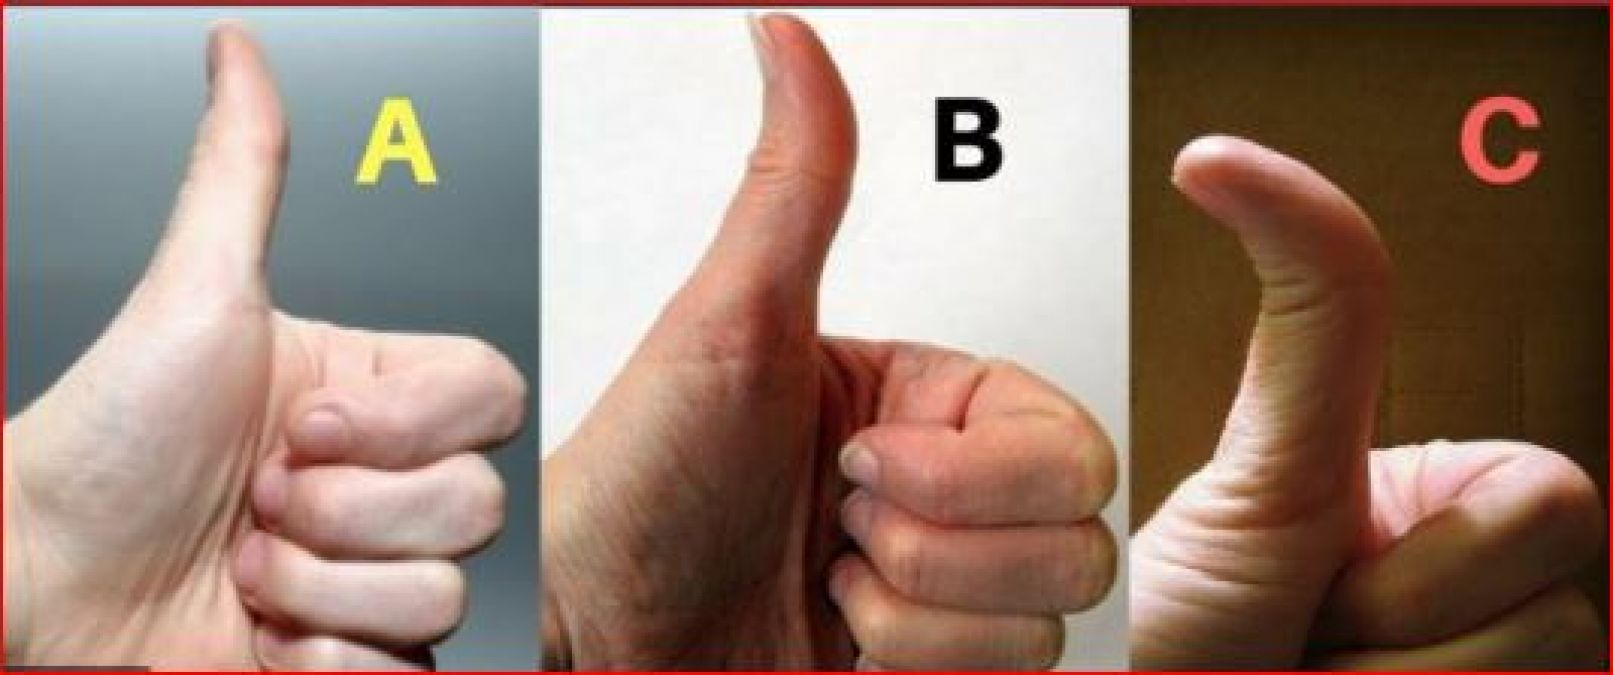 Here's what your thumb says about your personality